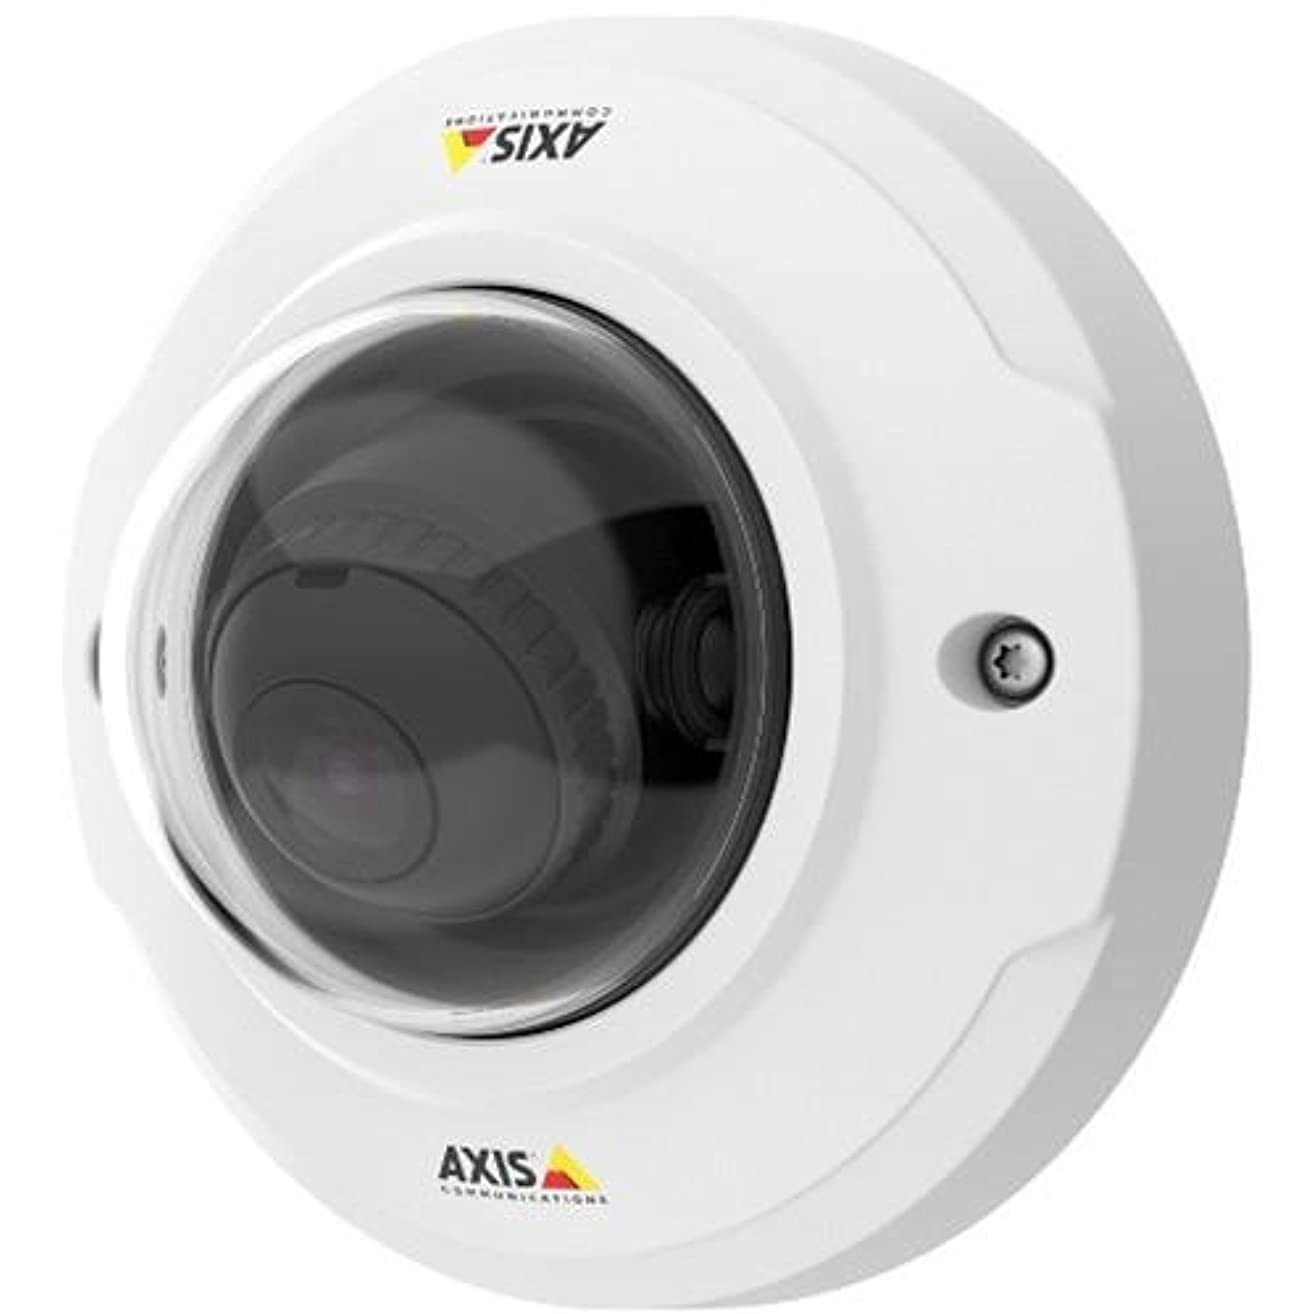 AXIS M3044-WV Network Camera - Color